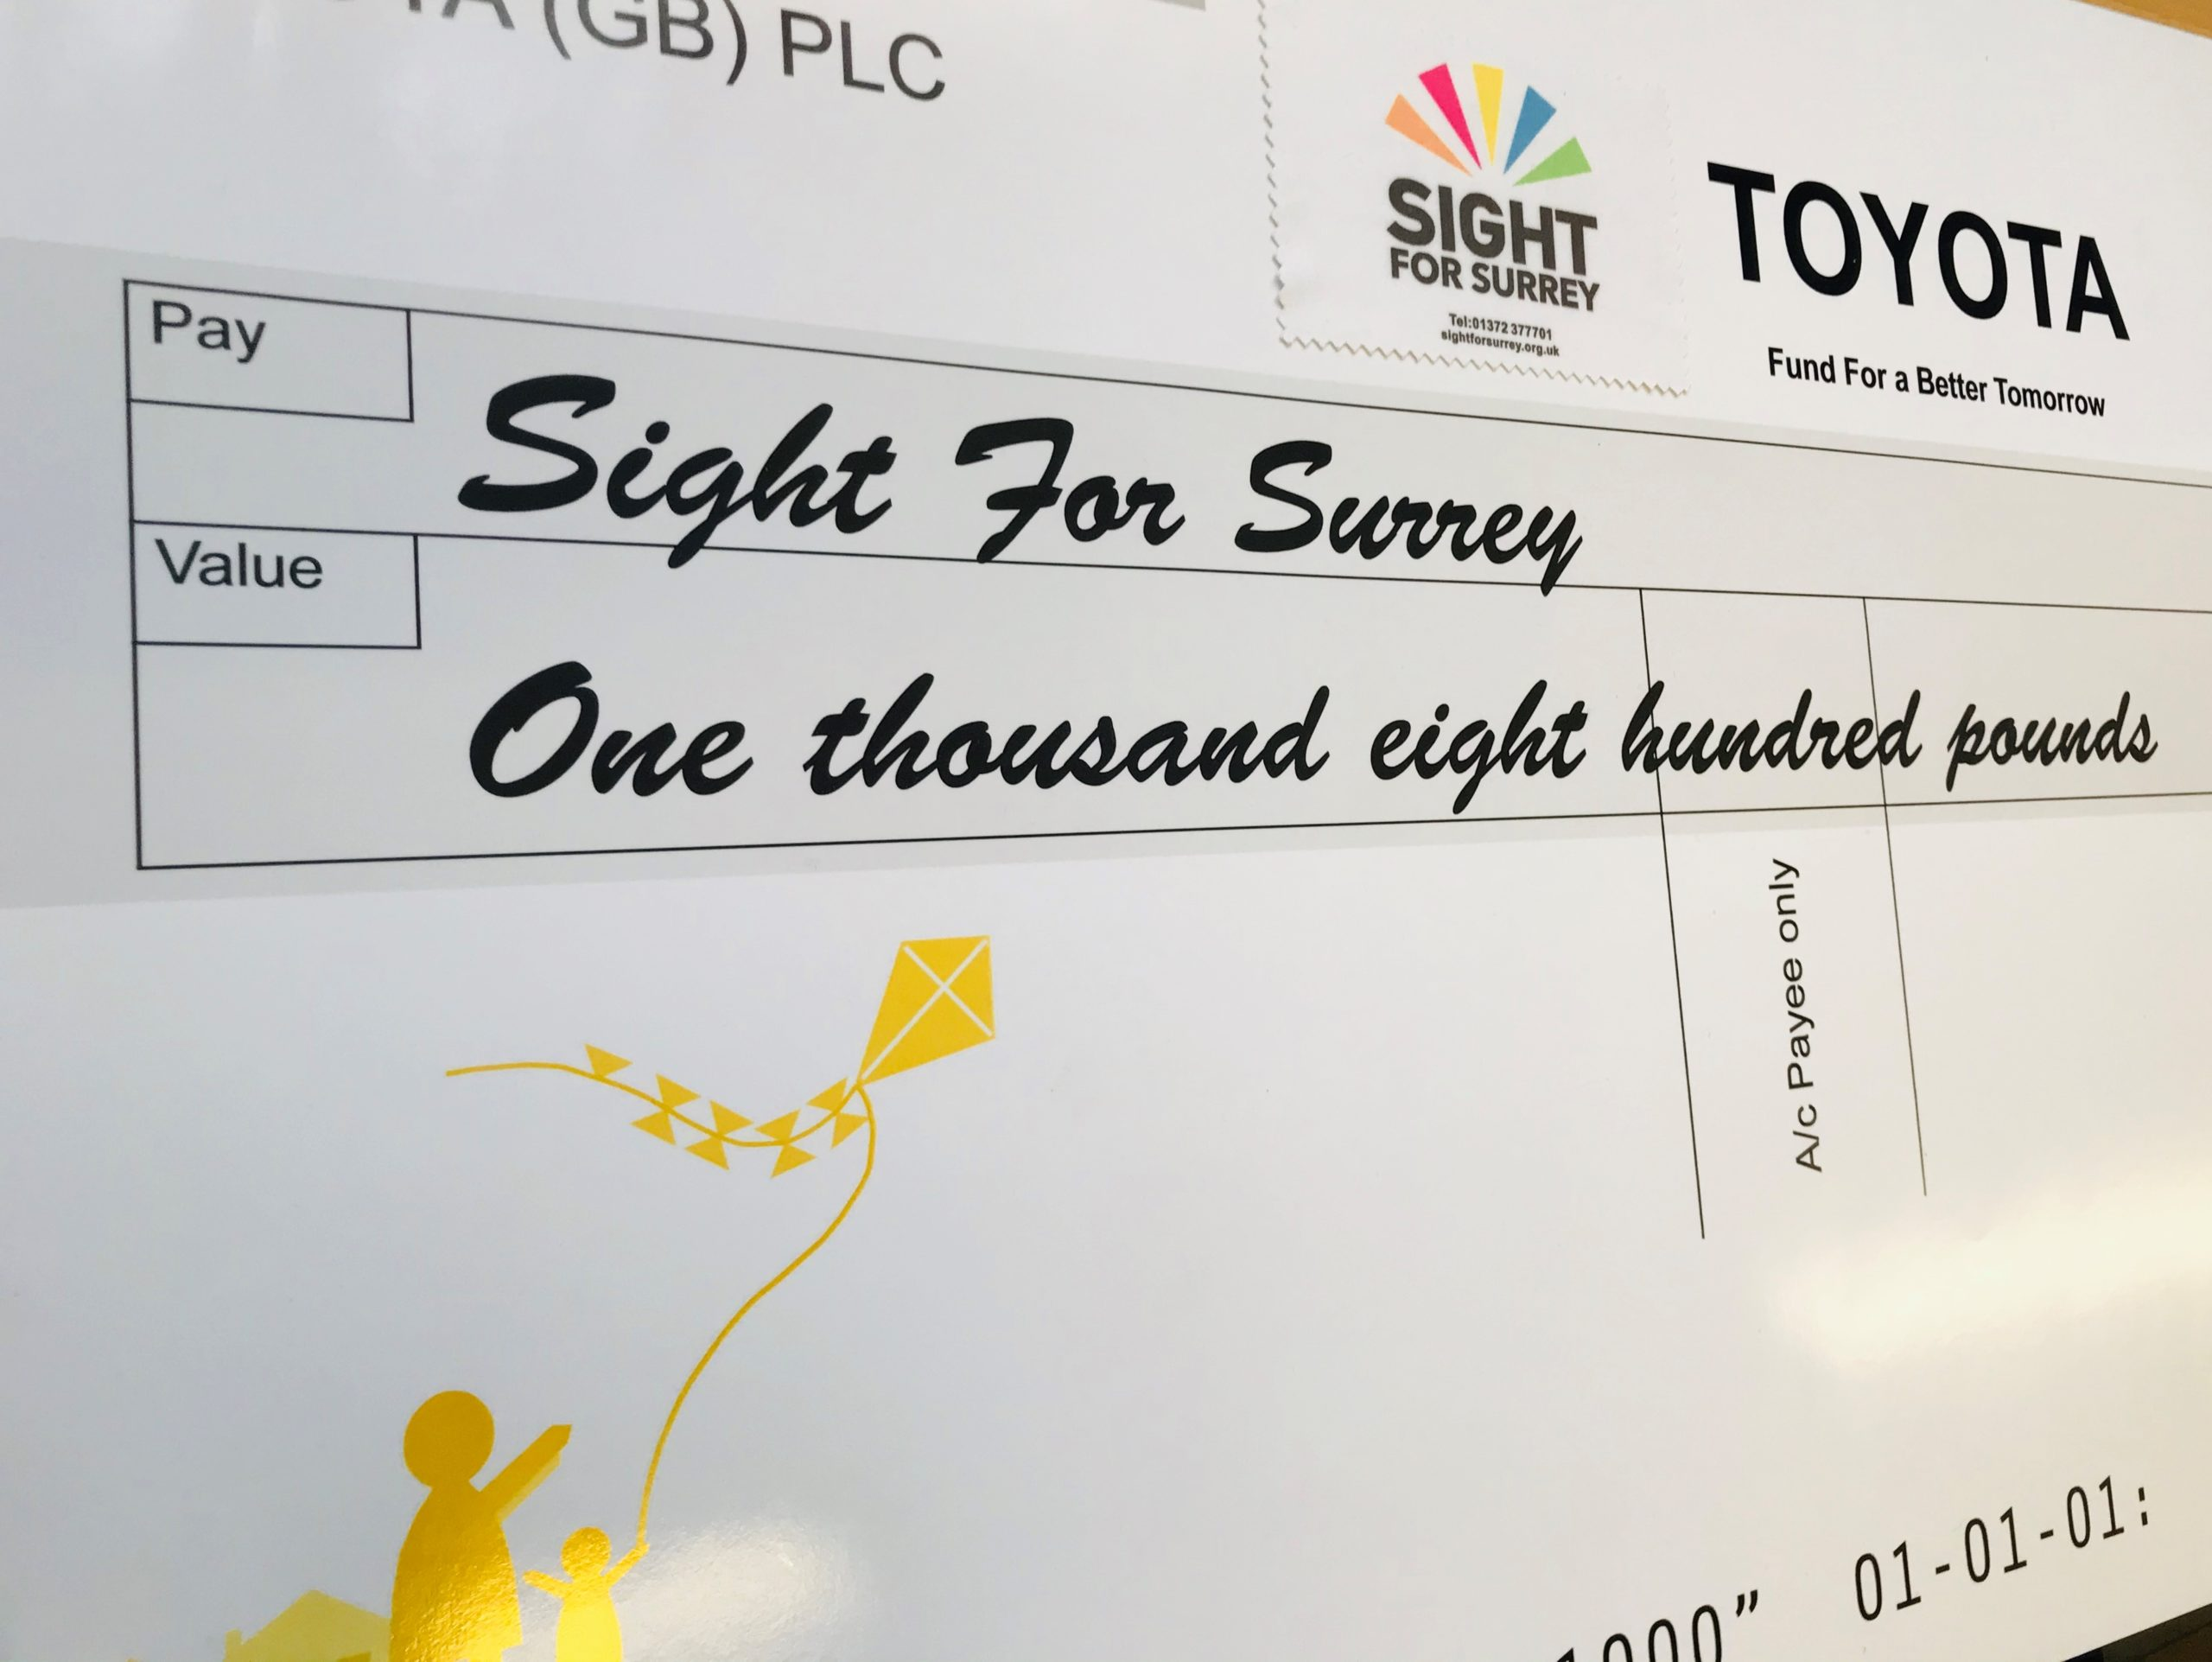 Toyota Fund for a Better Tomorrow Cheque